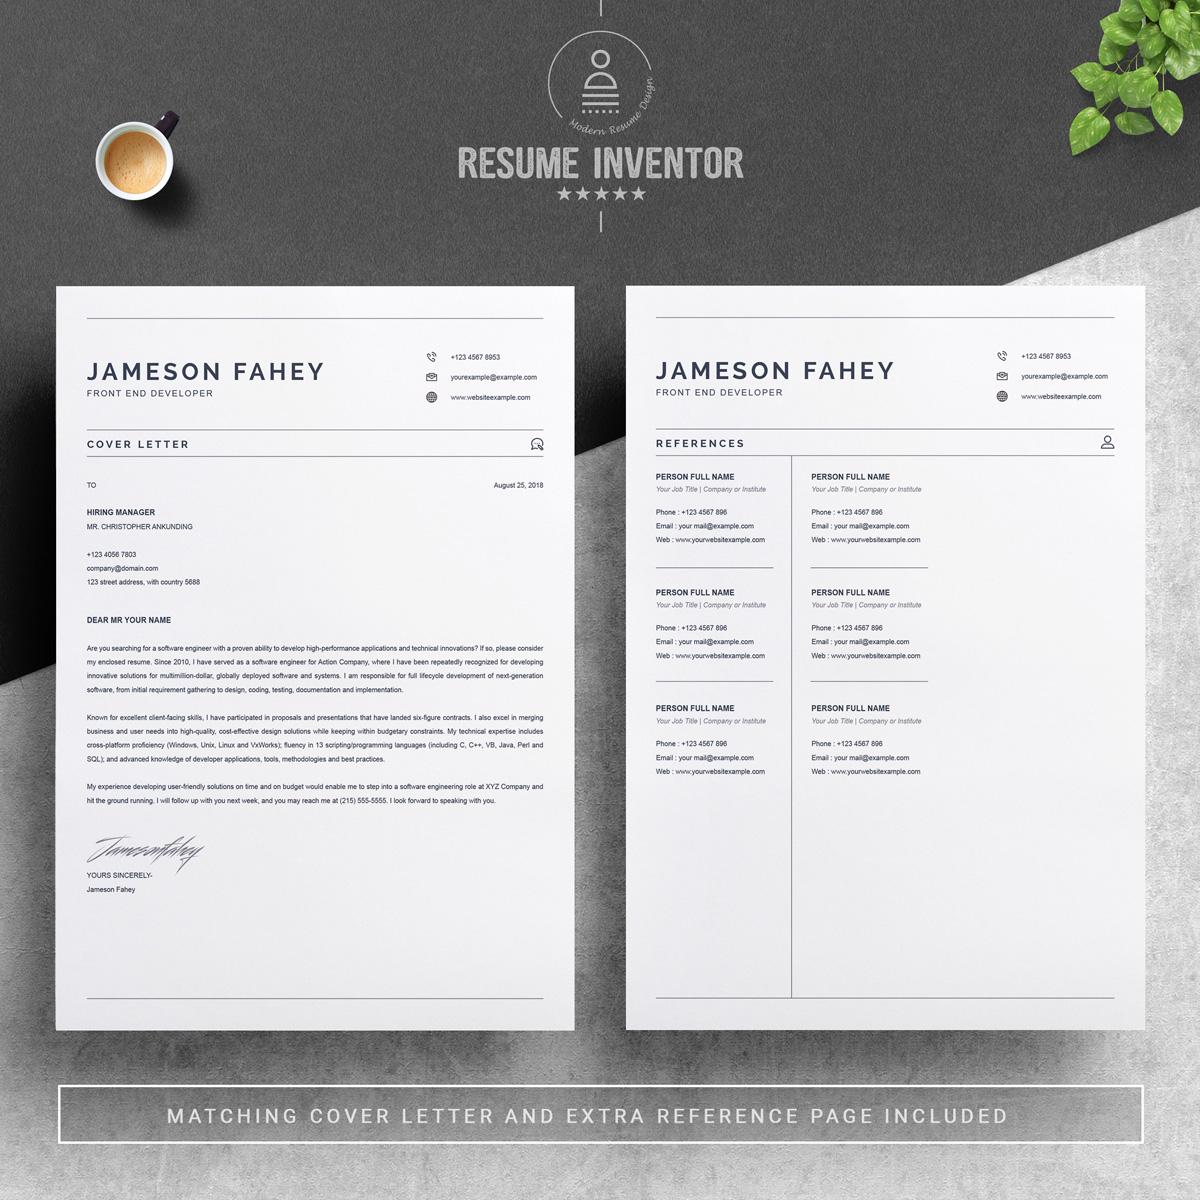 https://s3u.tmimgcdn.com/1860567-1553494240217_03_2-Pages-Free-Resume-Design-Template.jpg